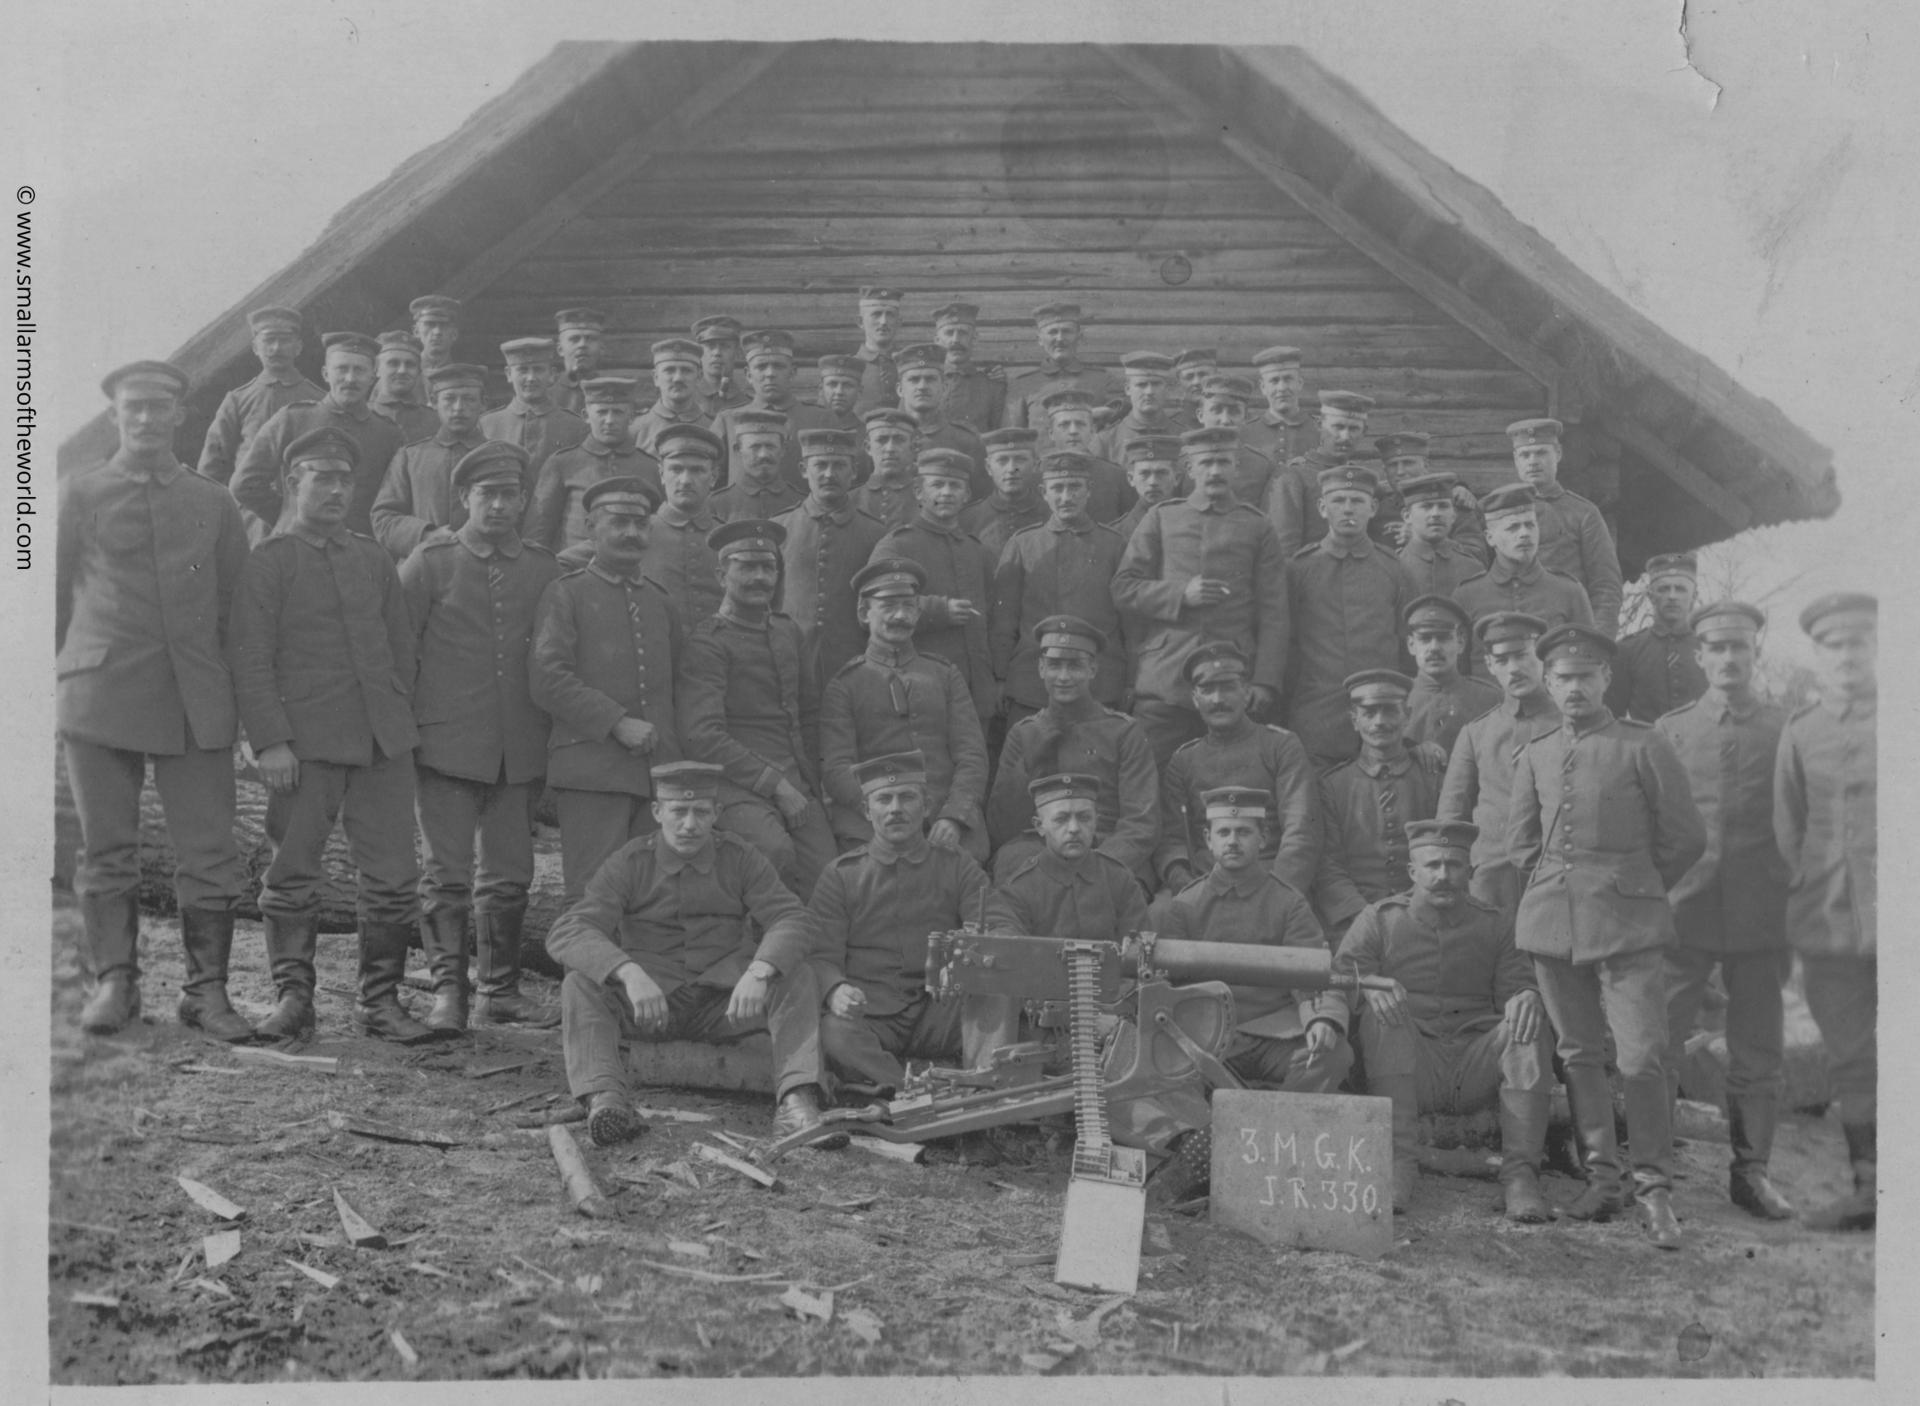 The officers and men in a machine gun company posing with their Maxim MG08 machine gun. The plaque in front designates this as the 3rd Machine Gun Company 330th Infantry Regiment.